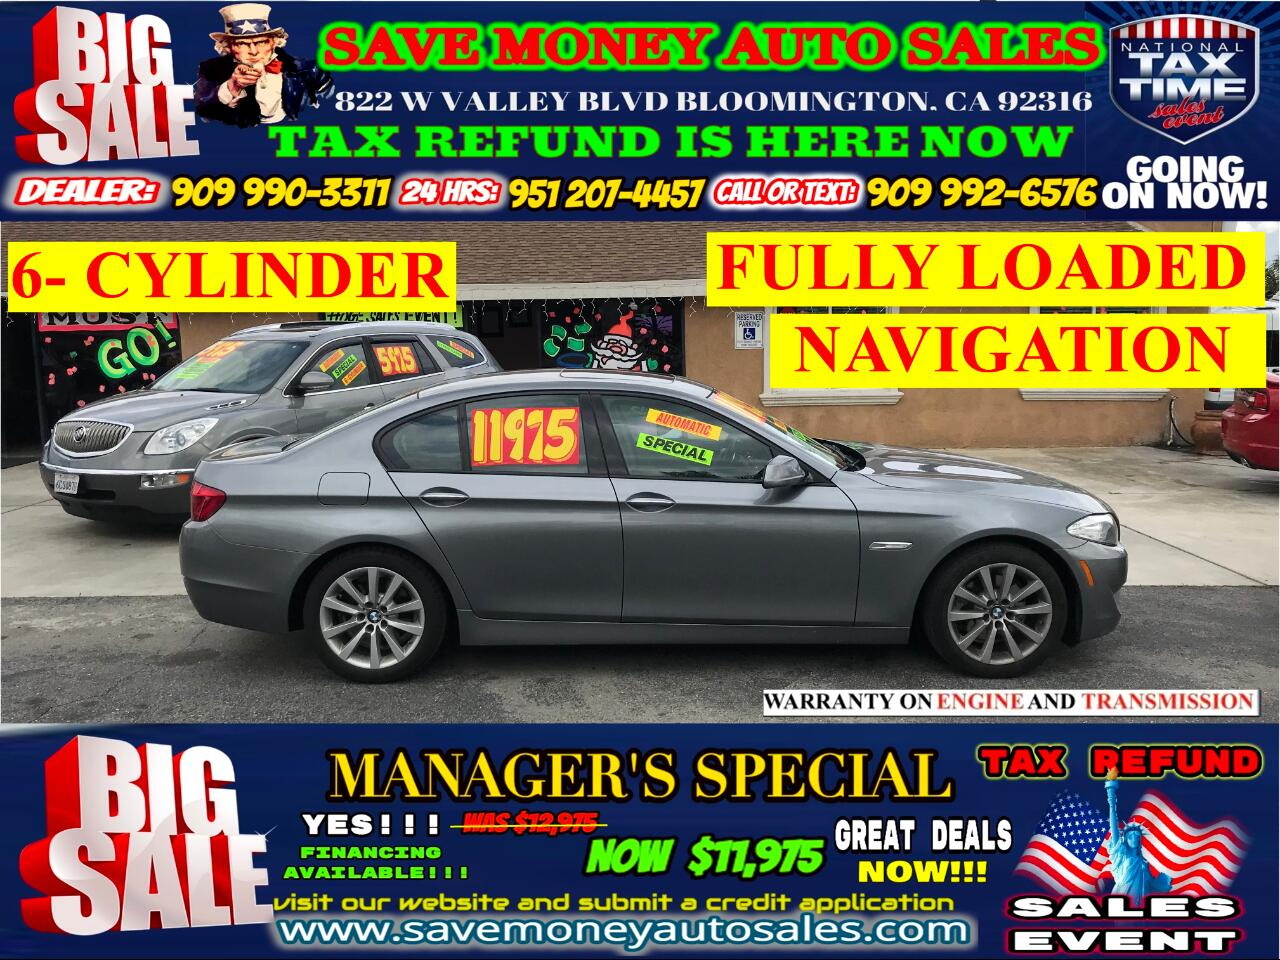 2011 BMW 5-Series 528i> 6-CYLINDER>FULL LEATHER> SUN ROOF>START ENGI